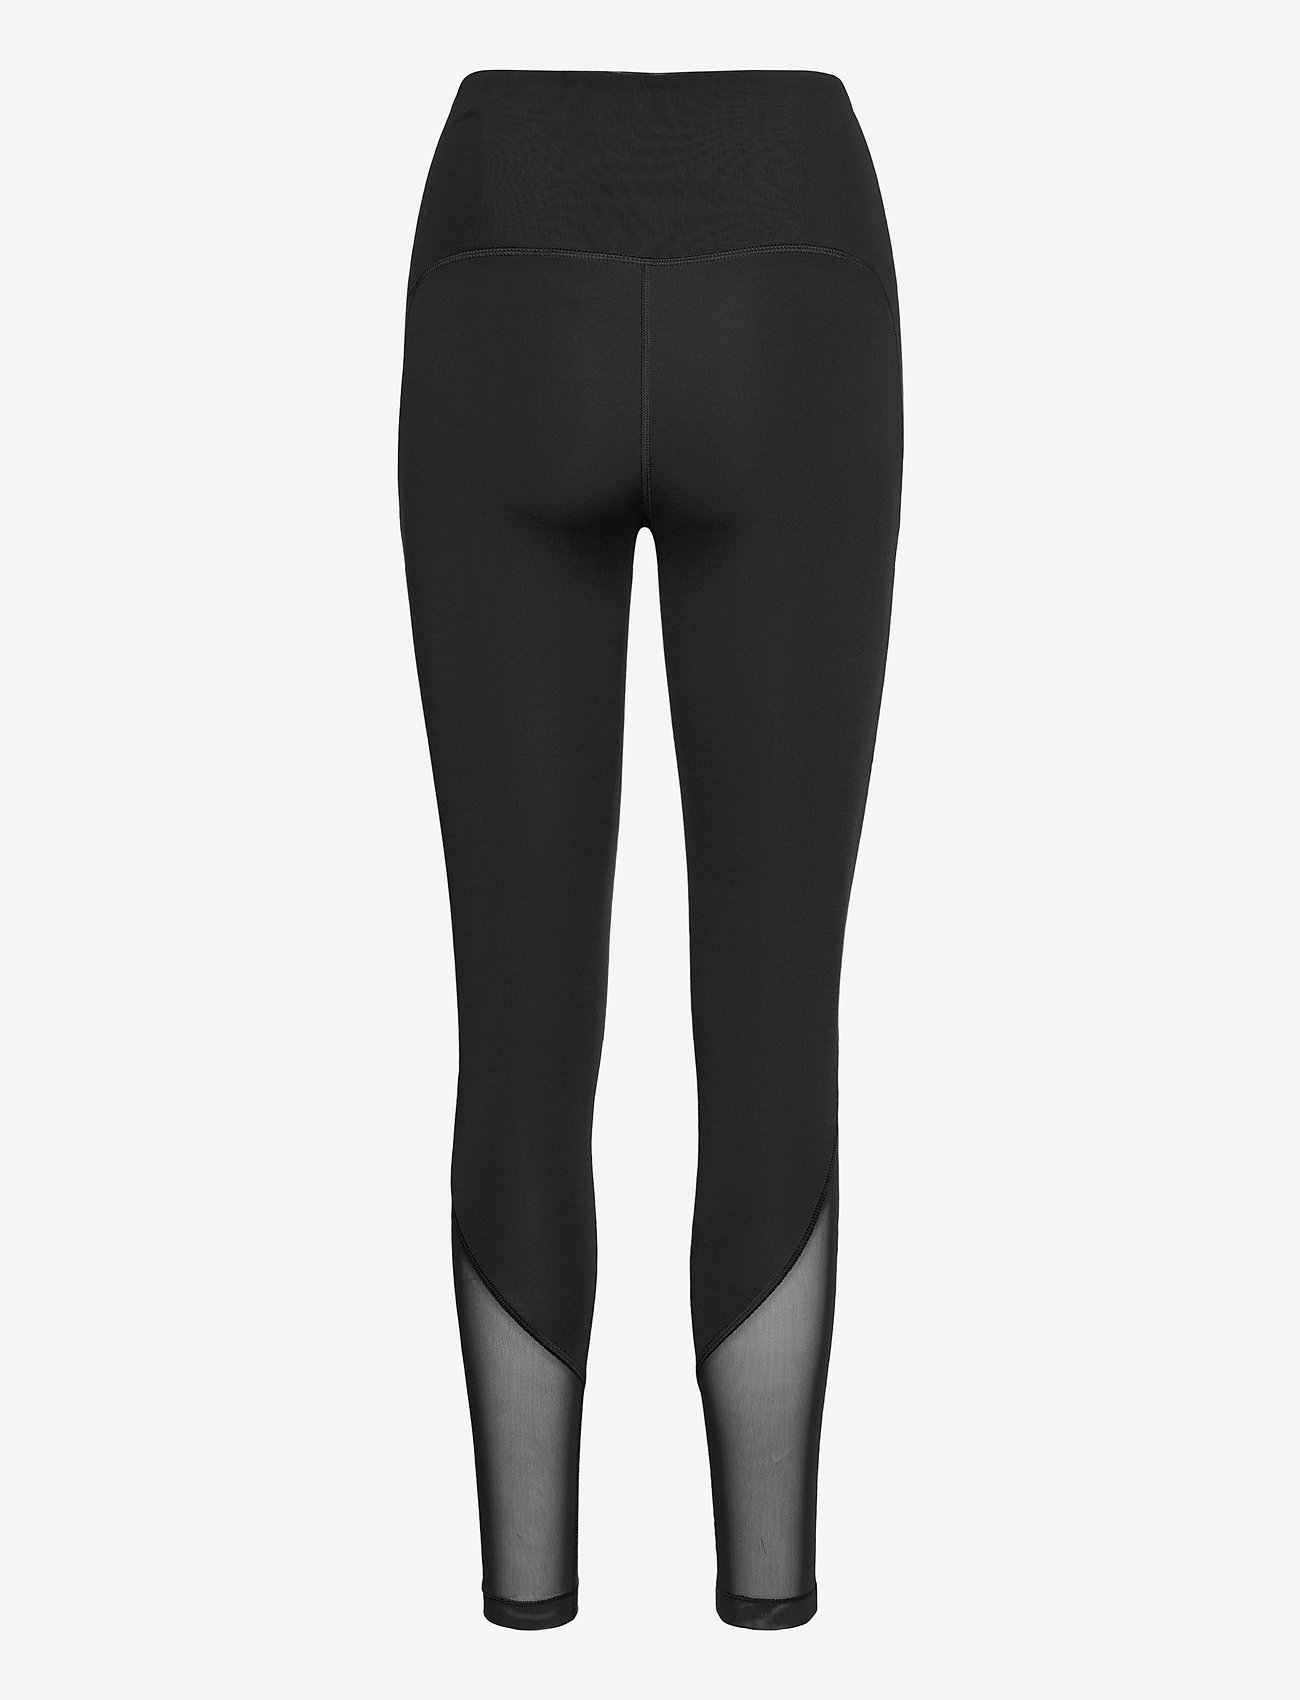 precoz Producción hogar  Lux High-rise Perform Tights W (Black) (70 €) - Reebok Performance - |  Boozt.com